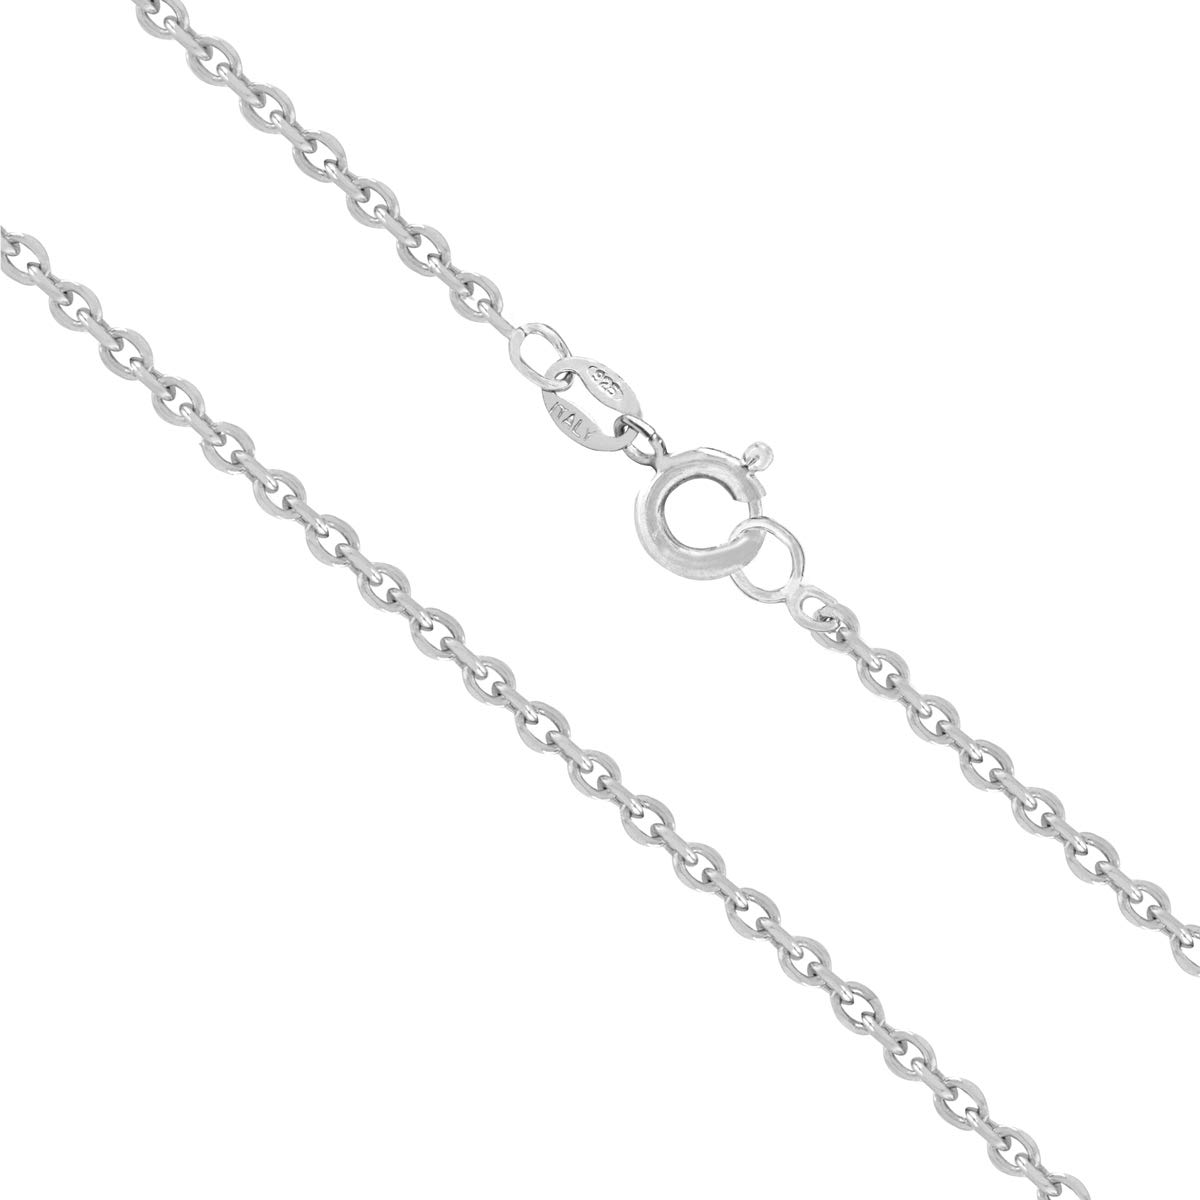 Honolulu Jewelry Company Sterling Silver 1.5mm Cable Chain, 14\' - 36\' CHNCABLE1.5M